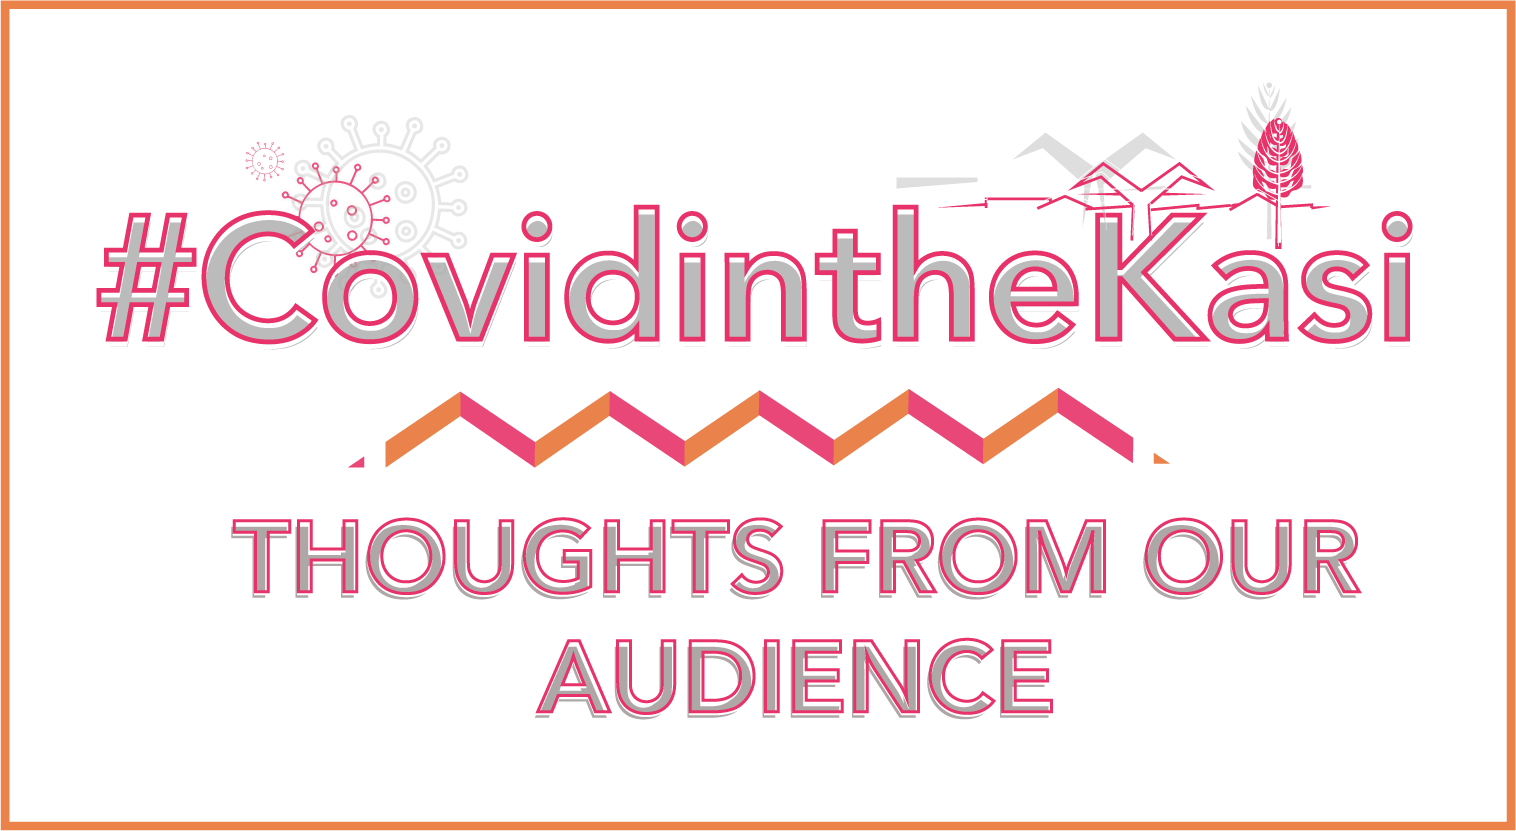 Covid in the kasi - thoughts from our audience